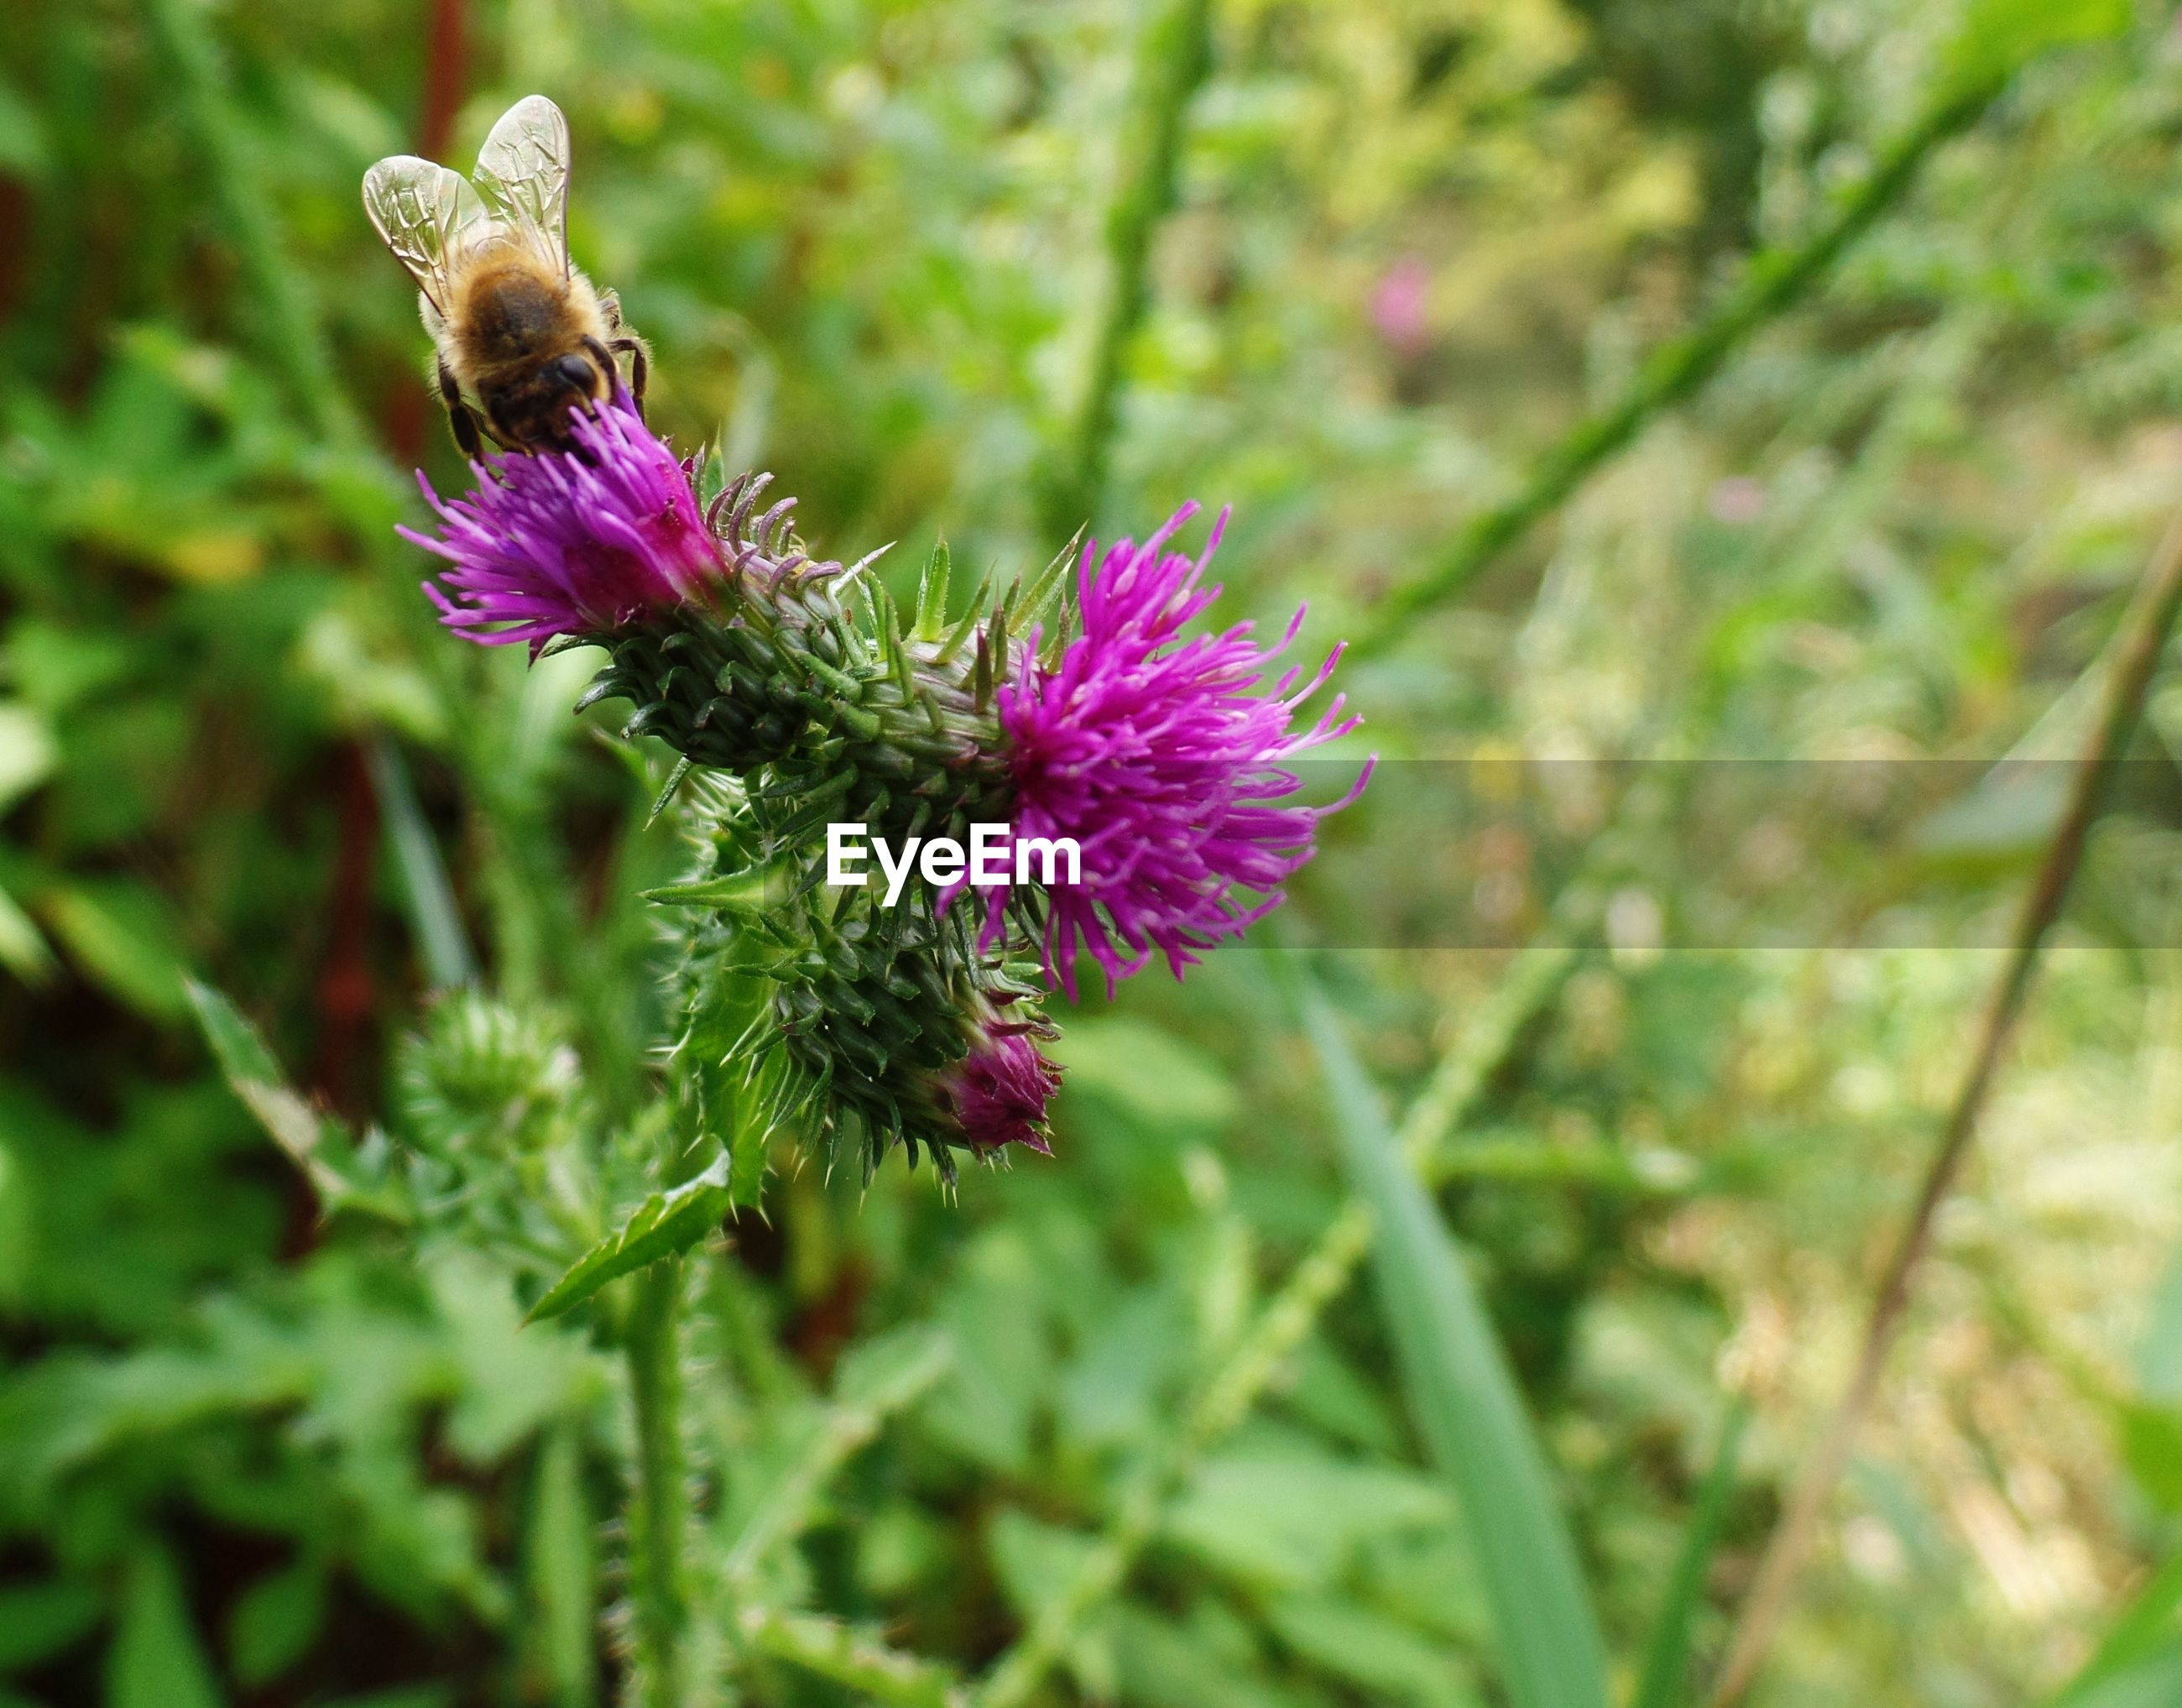 High angle view of insect on thistle blooming outdoors